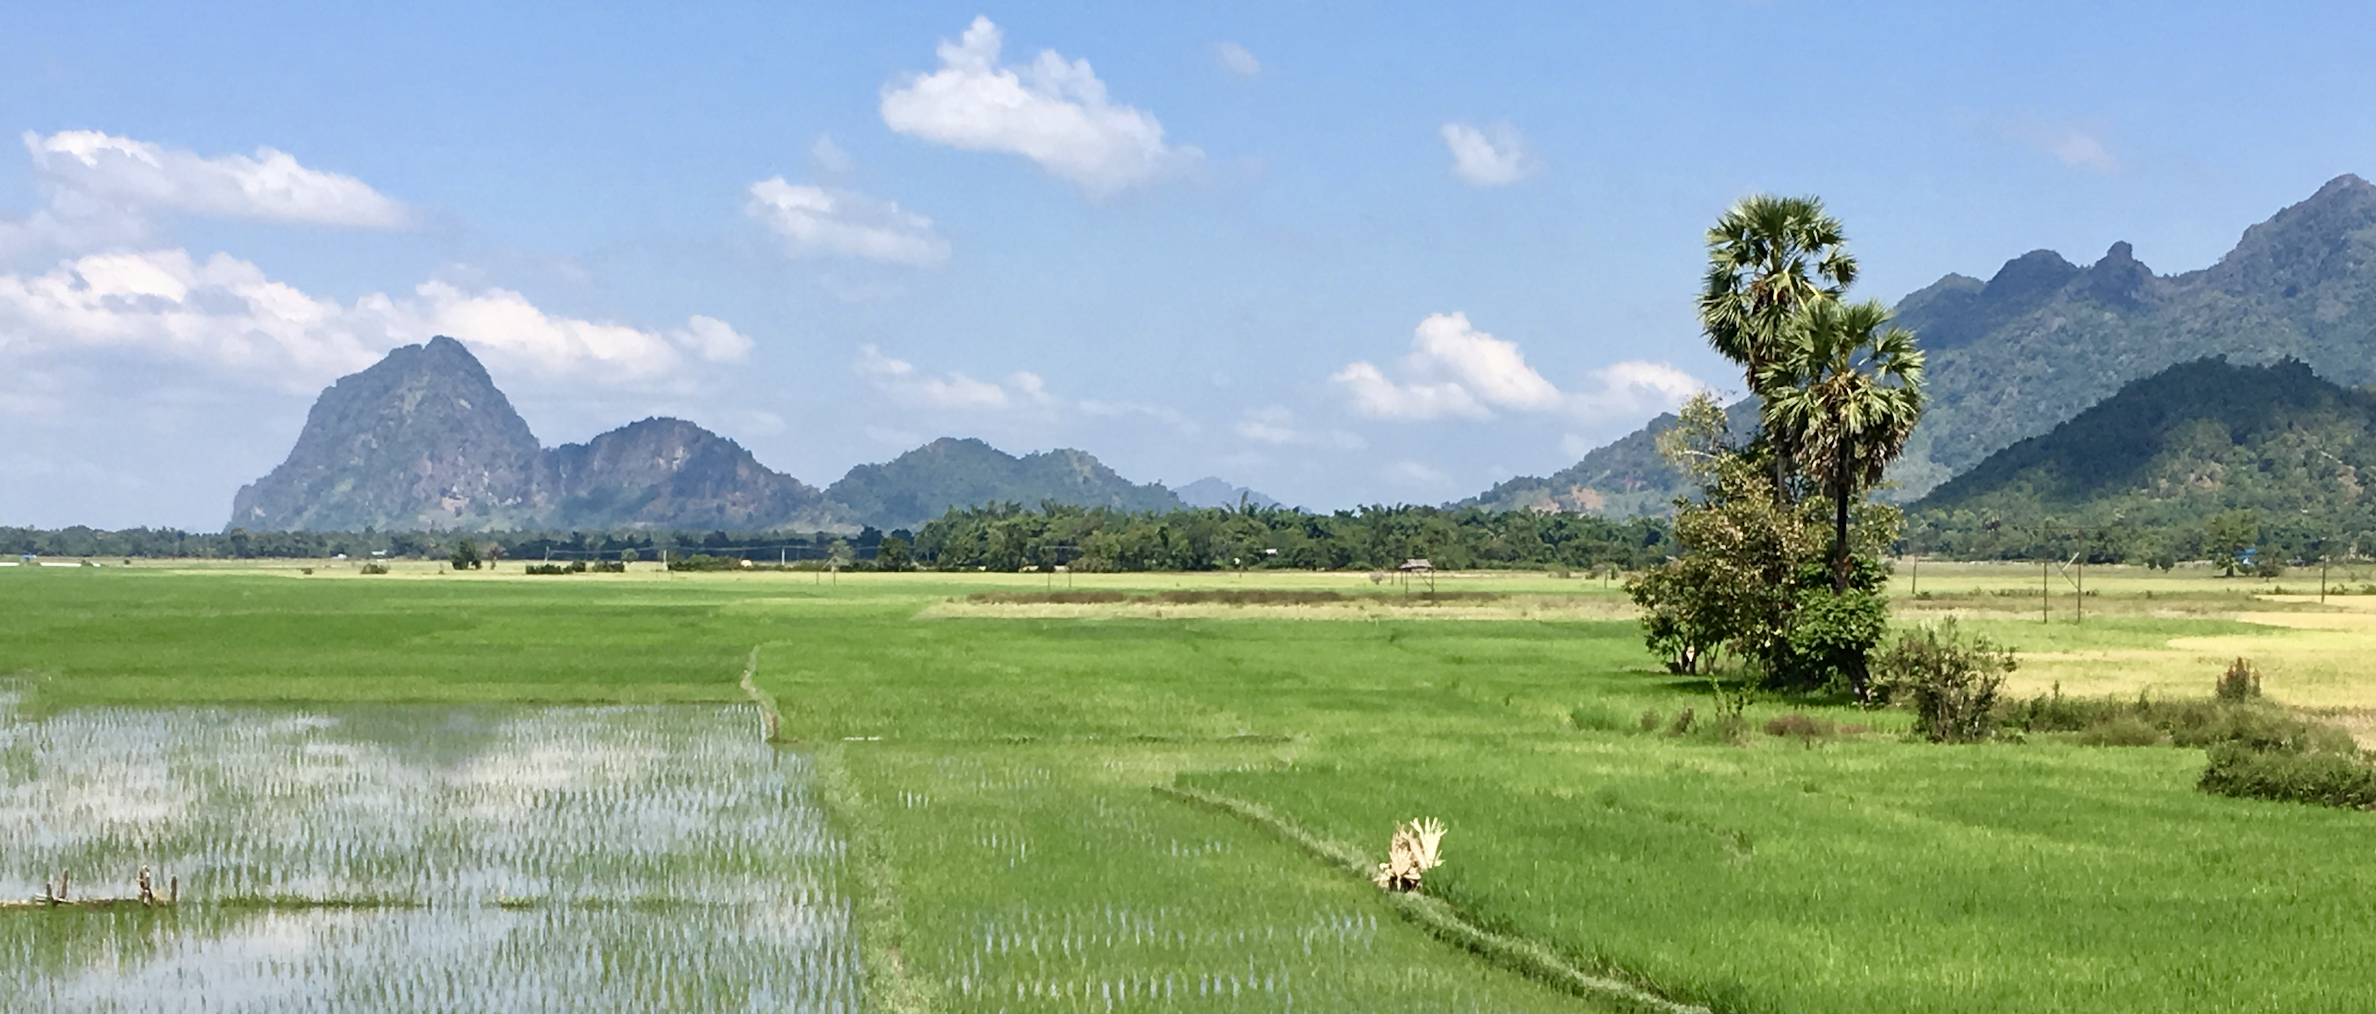 Out and about in Kayin State